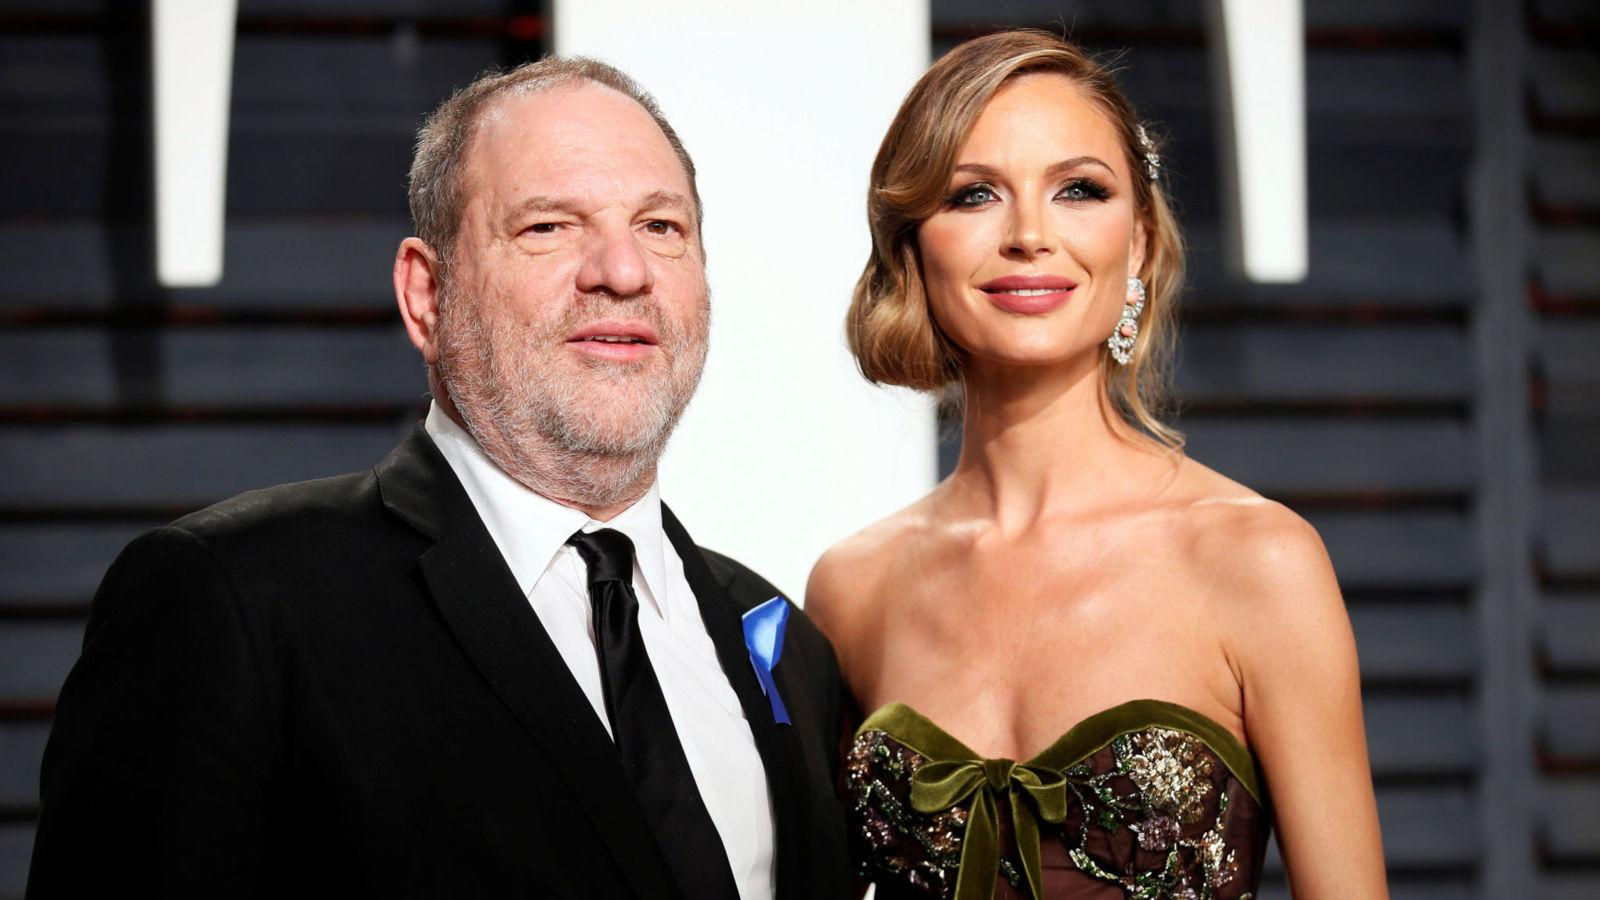 Harvey Weinstein and Georgina Chapman married in 2007